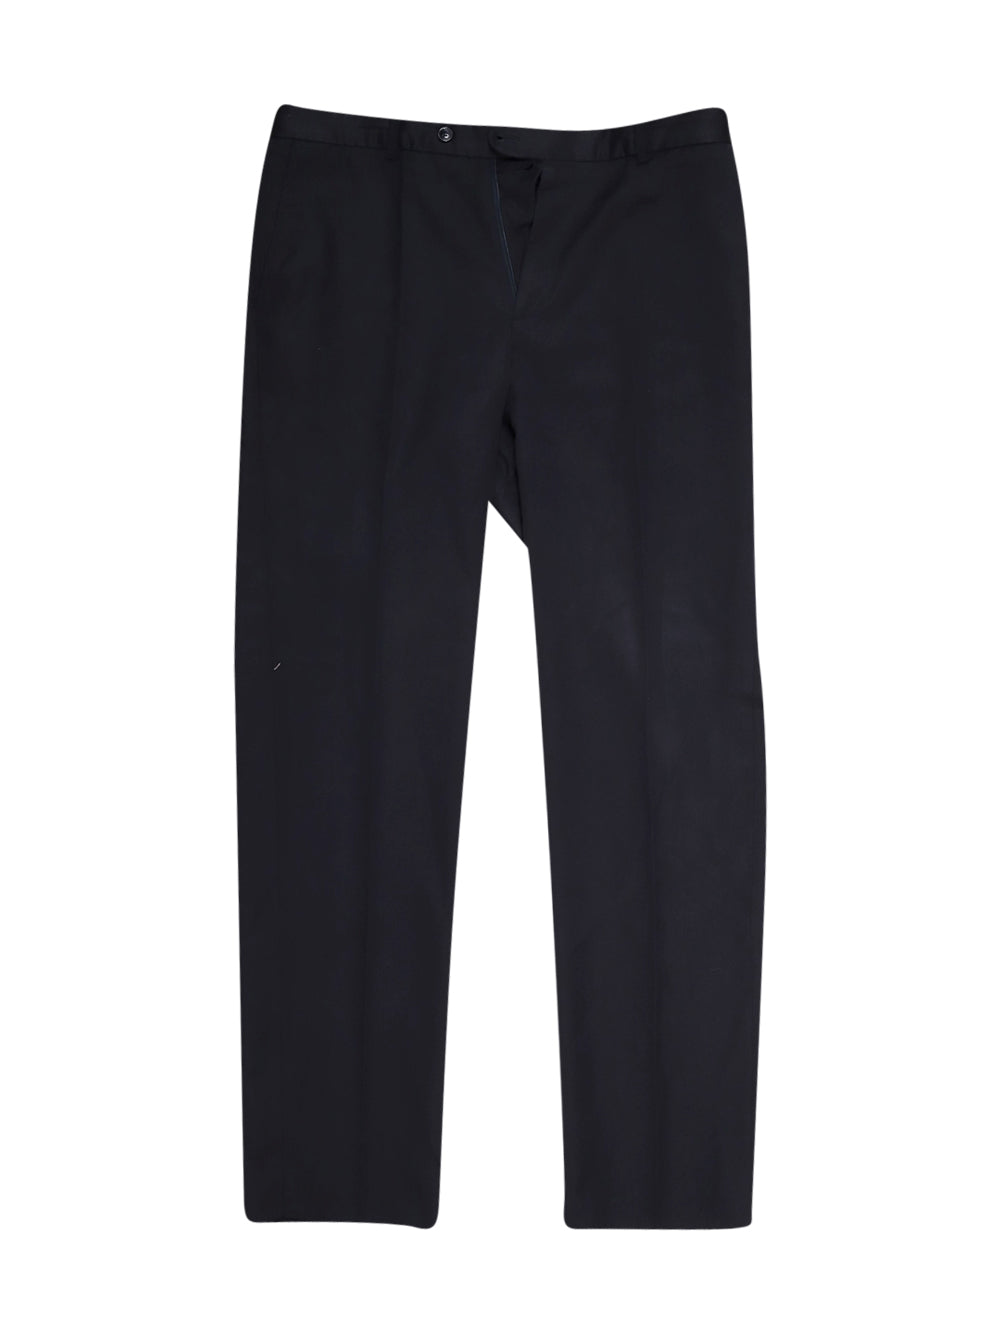 Front photo of Preloved FENI Black Man's trousers - size 42/XL